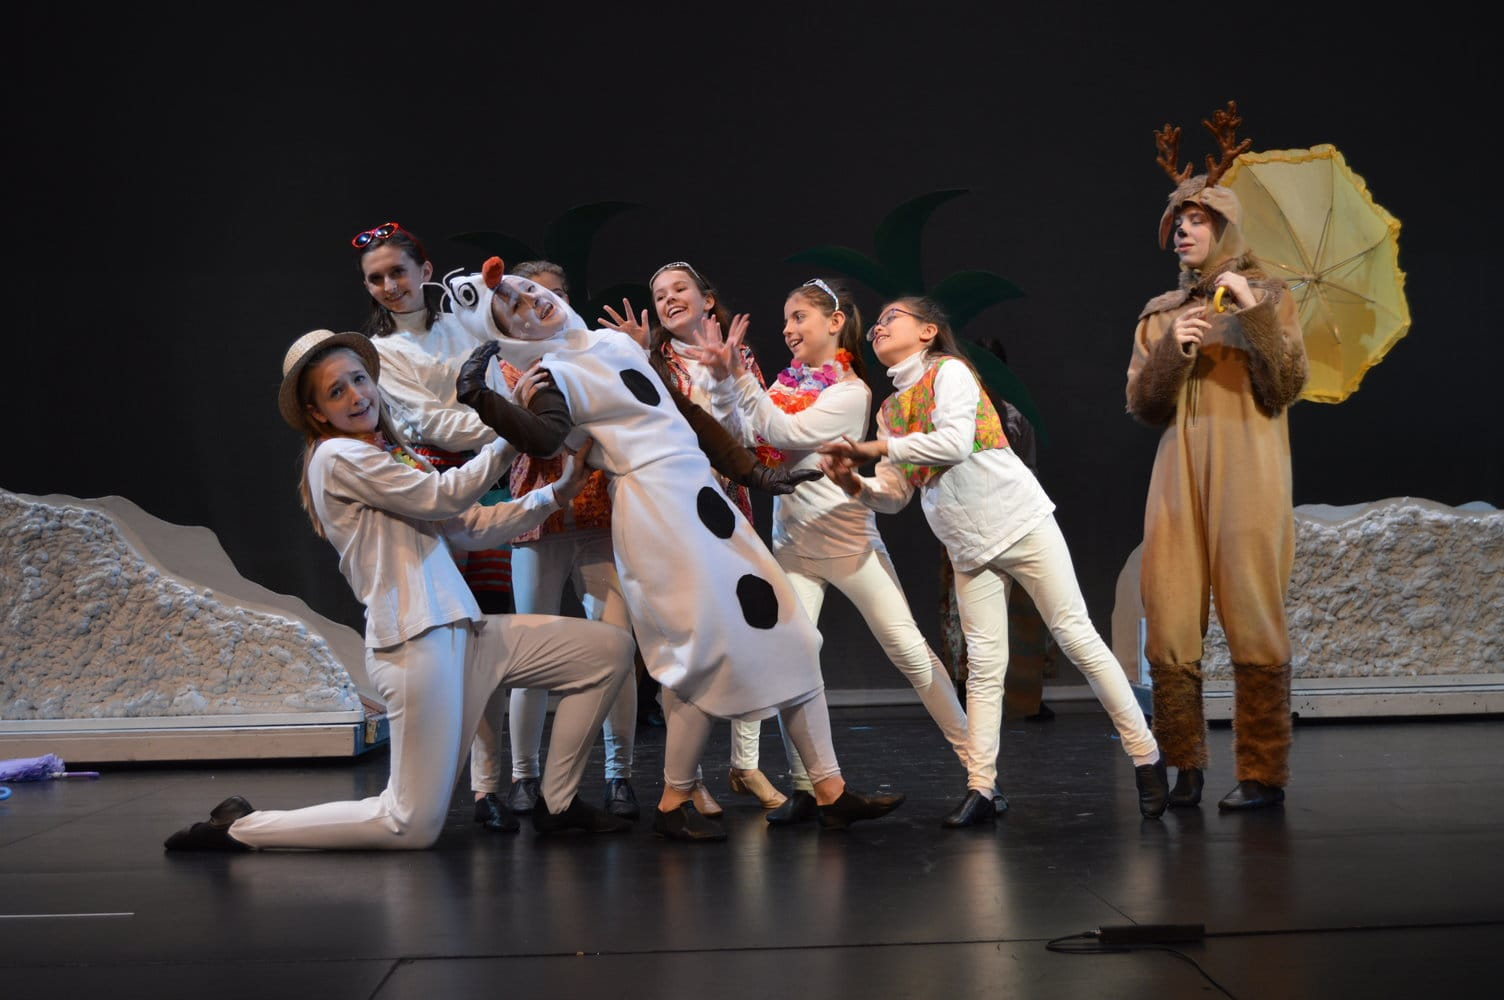 """Olaf (Jillian Michelson), Sven (Sydney Payne) and ensemble perform """"In Summer"""" in Encore's production of Disney's 'Frozen Jr.' Photo by Aileen Christian."""